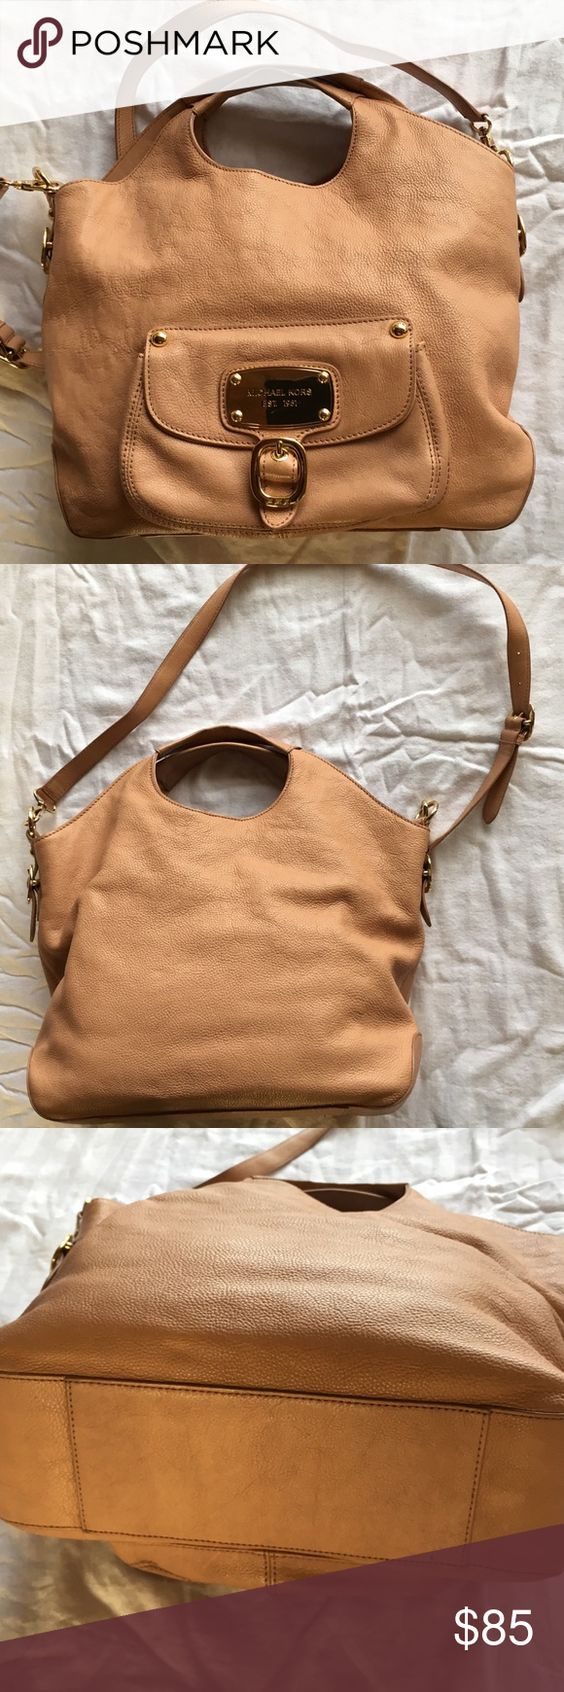 Authentic Michael Kors large leather bag Like new. Two large open sections and one zipped section inside. Cloth lined   Beige leather. Handles and a strap with gold-colored hardware Michael Kors Bags